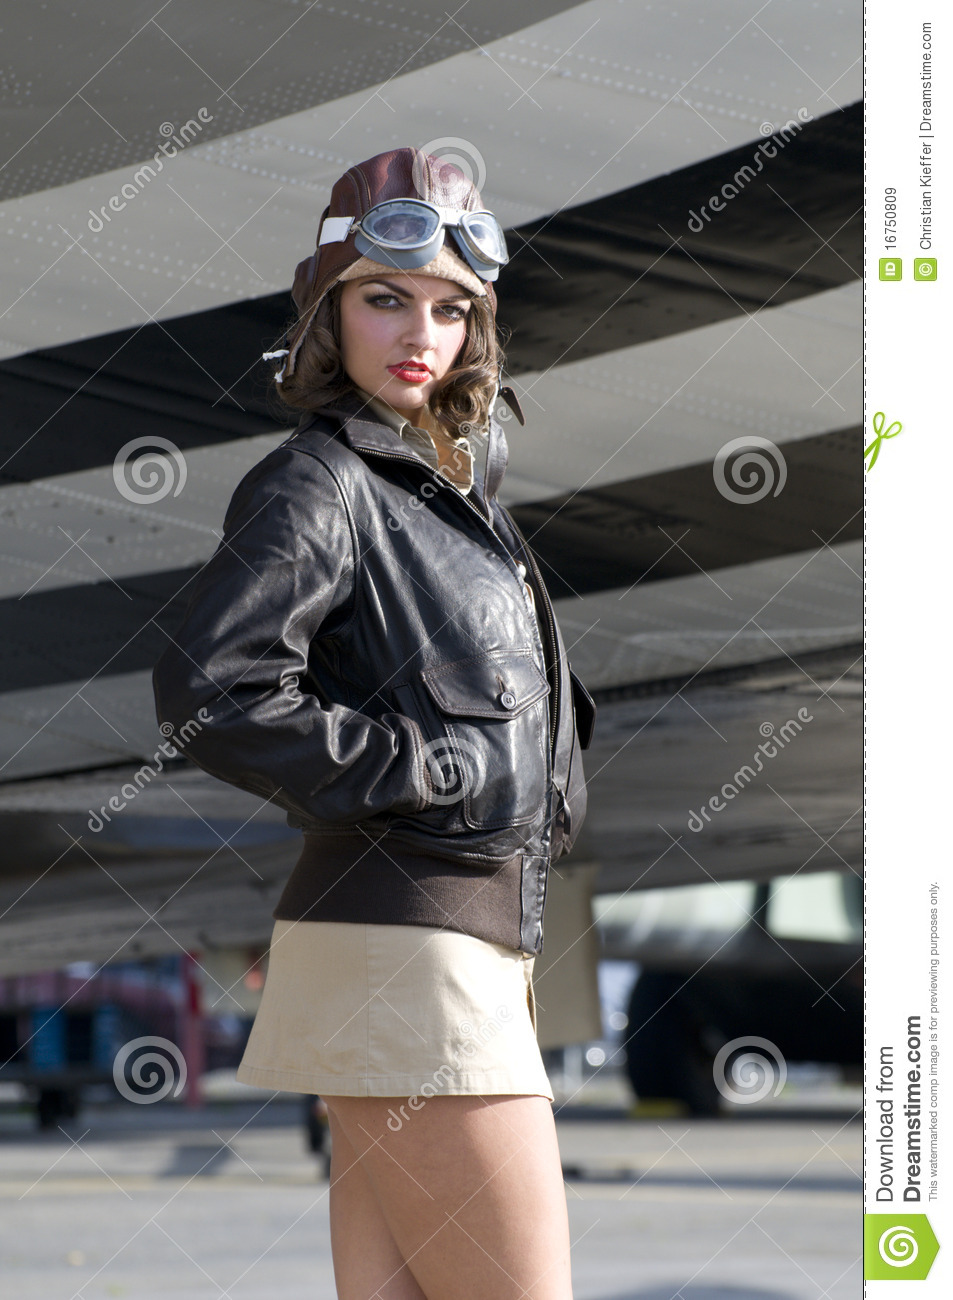 hot women helicopter pilot